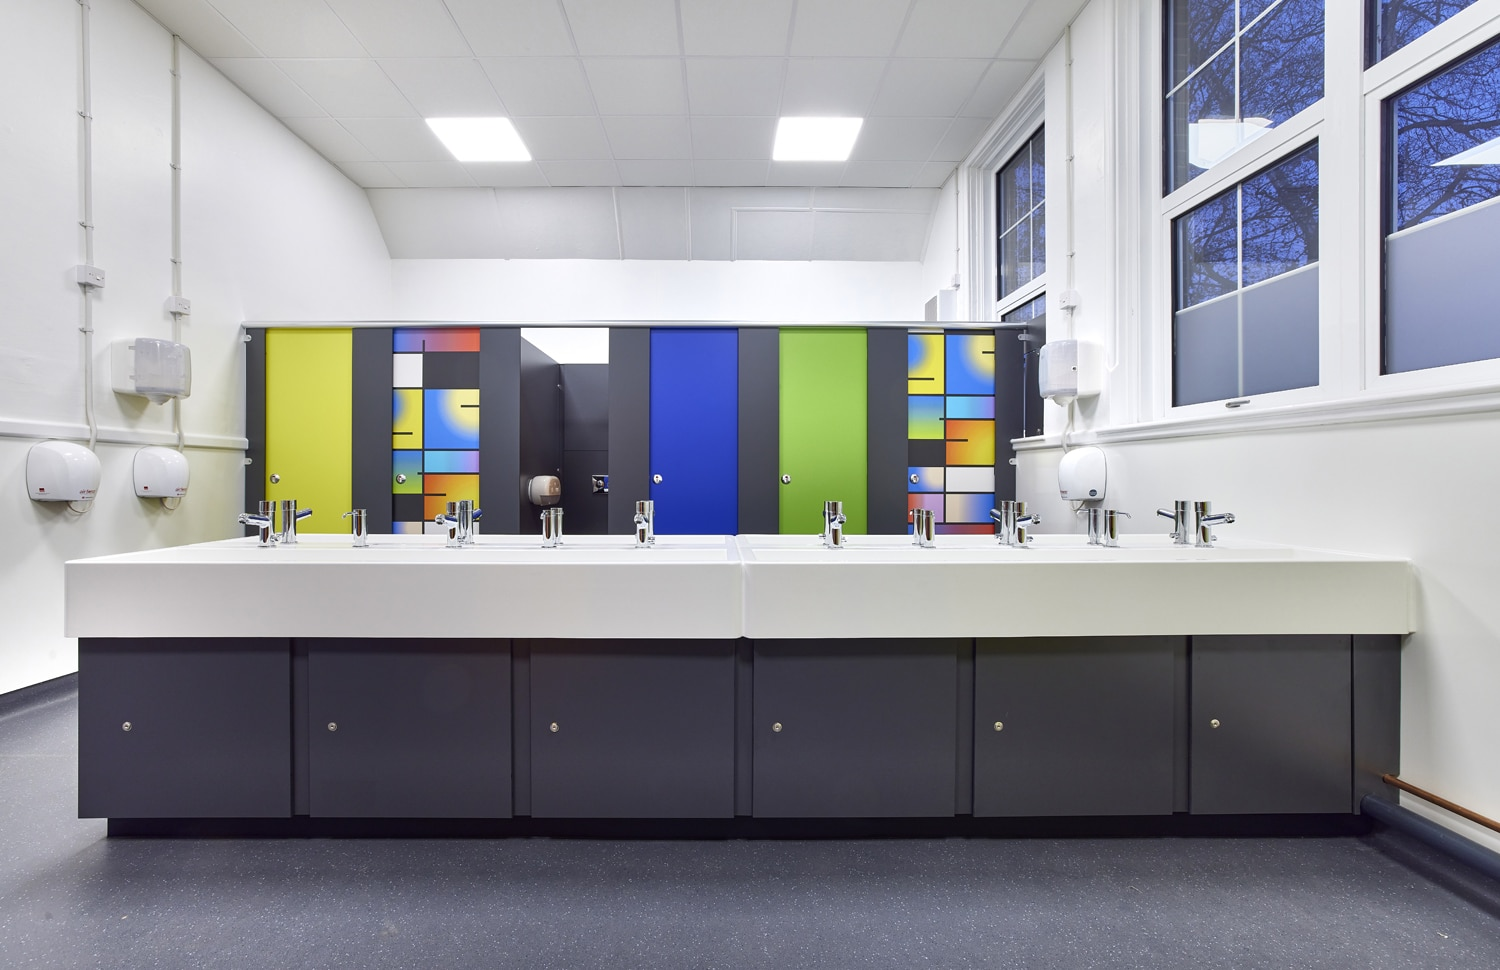 Dunhams Washroom Systems assist in the refurb of Wensum Junior School